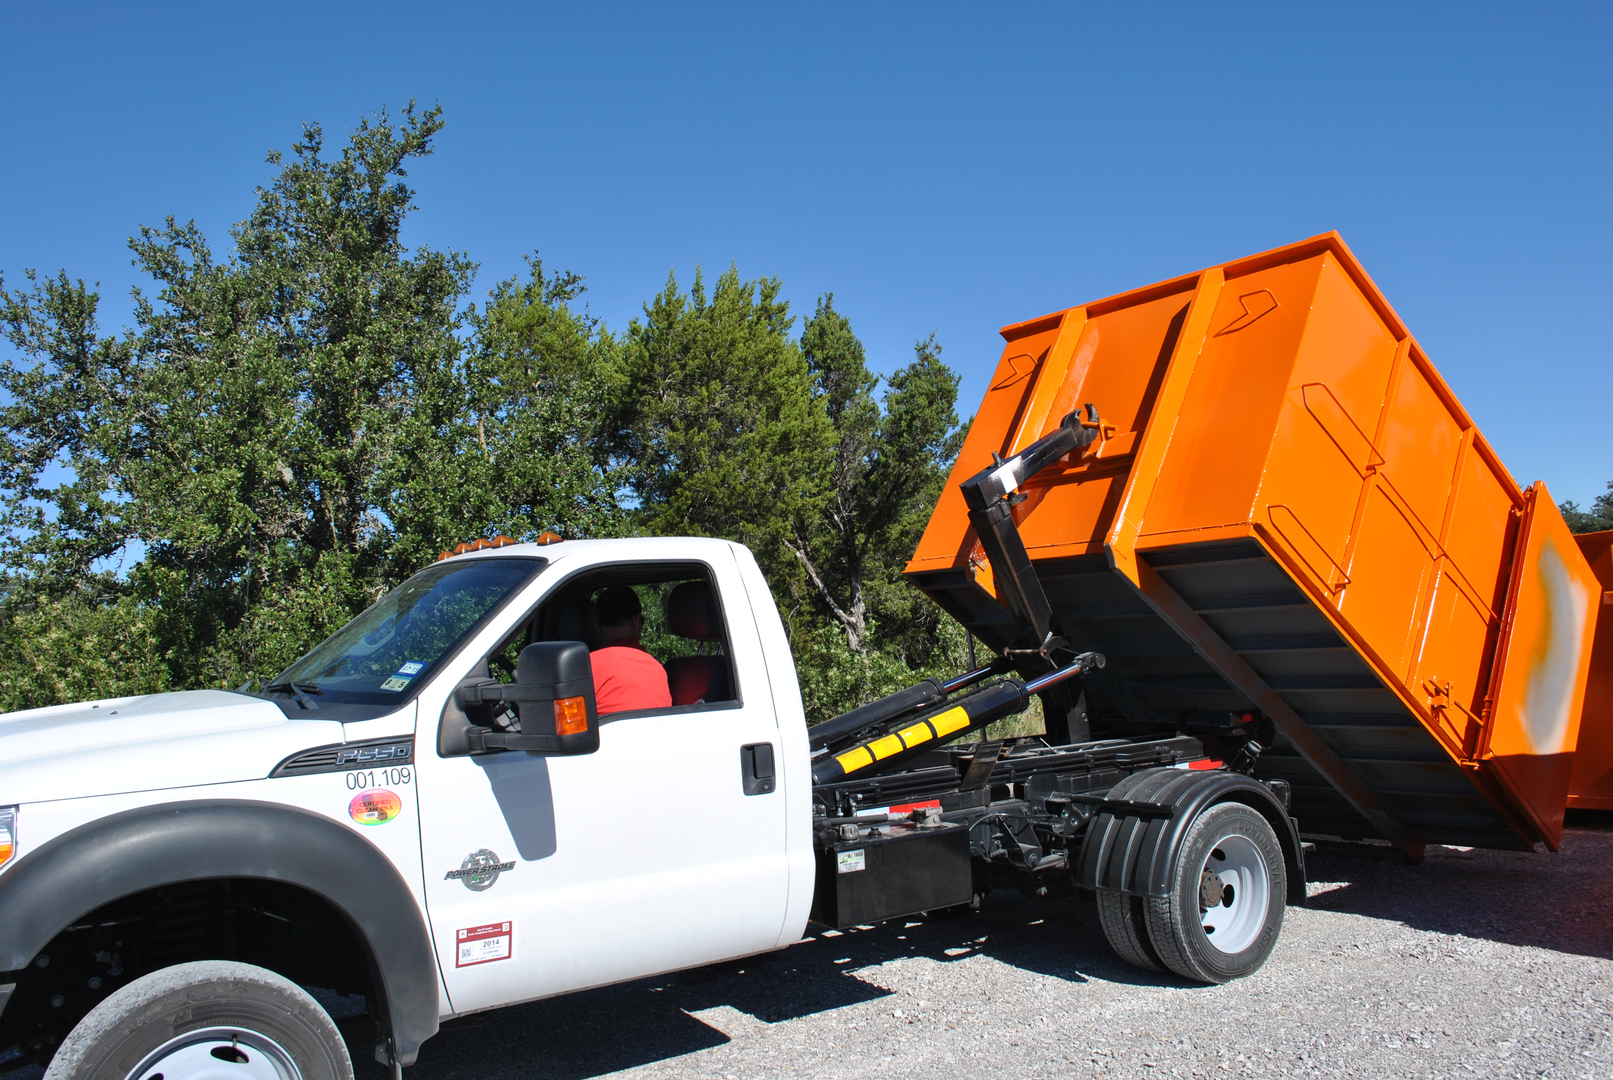 Front End Loaders Fel S Are Trucks With Hydraulic Forks On The To Lift Dumpsters Up And Dump Contents Into Box Of Truck